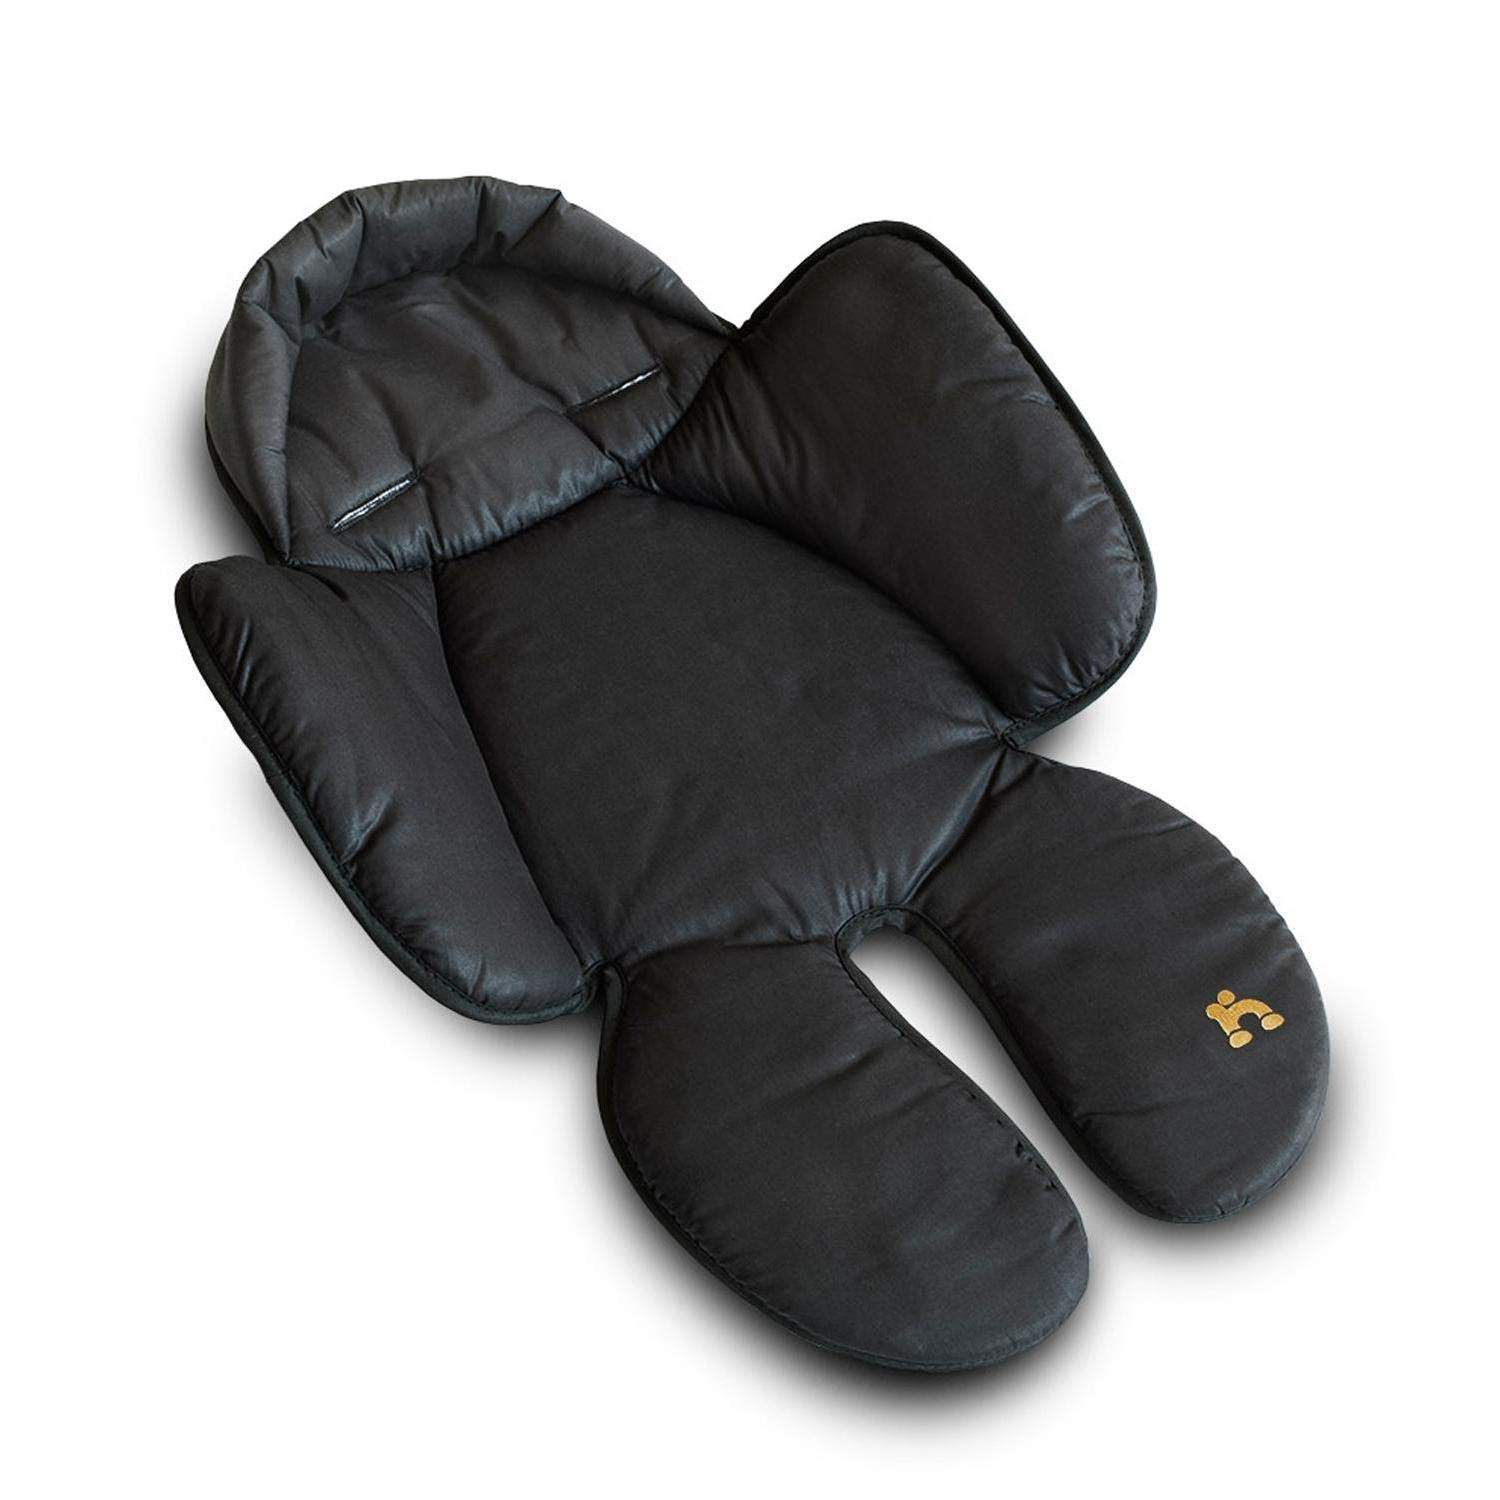 Out'n'About Newborn Support Black